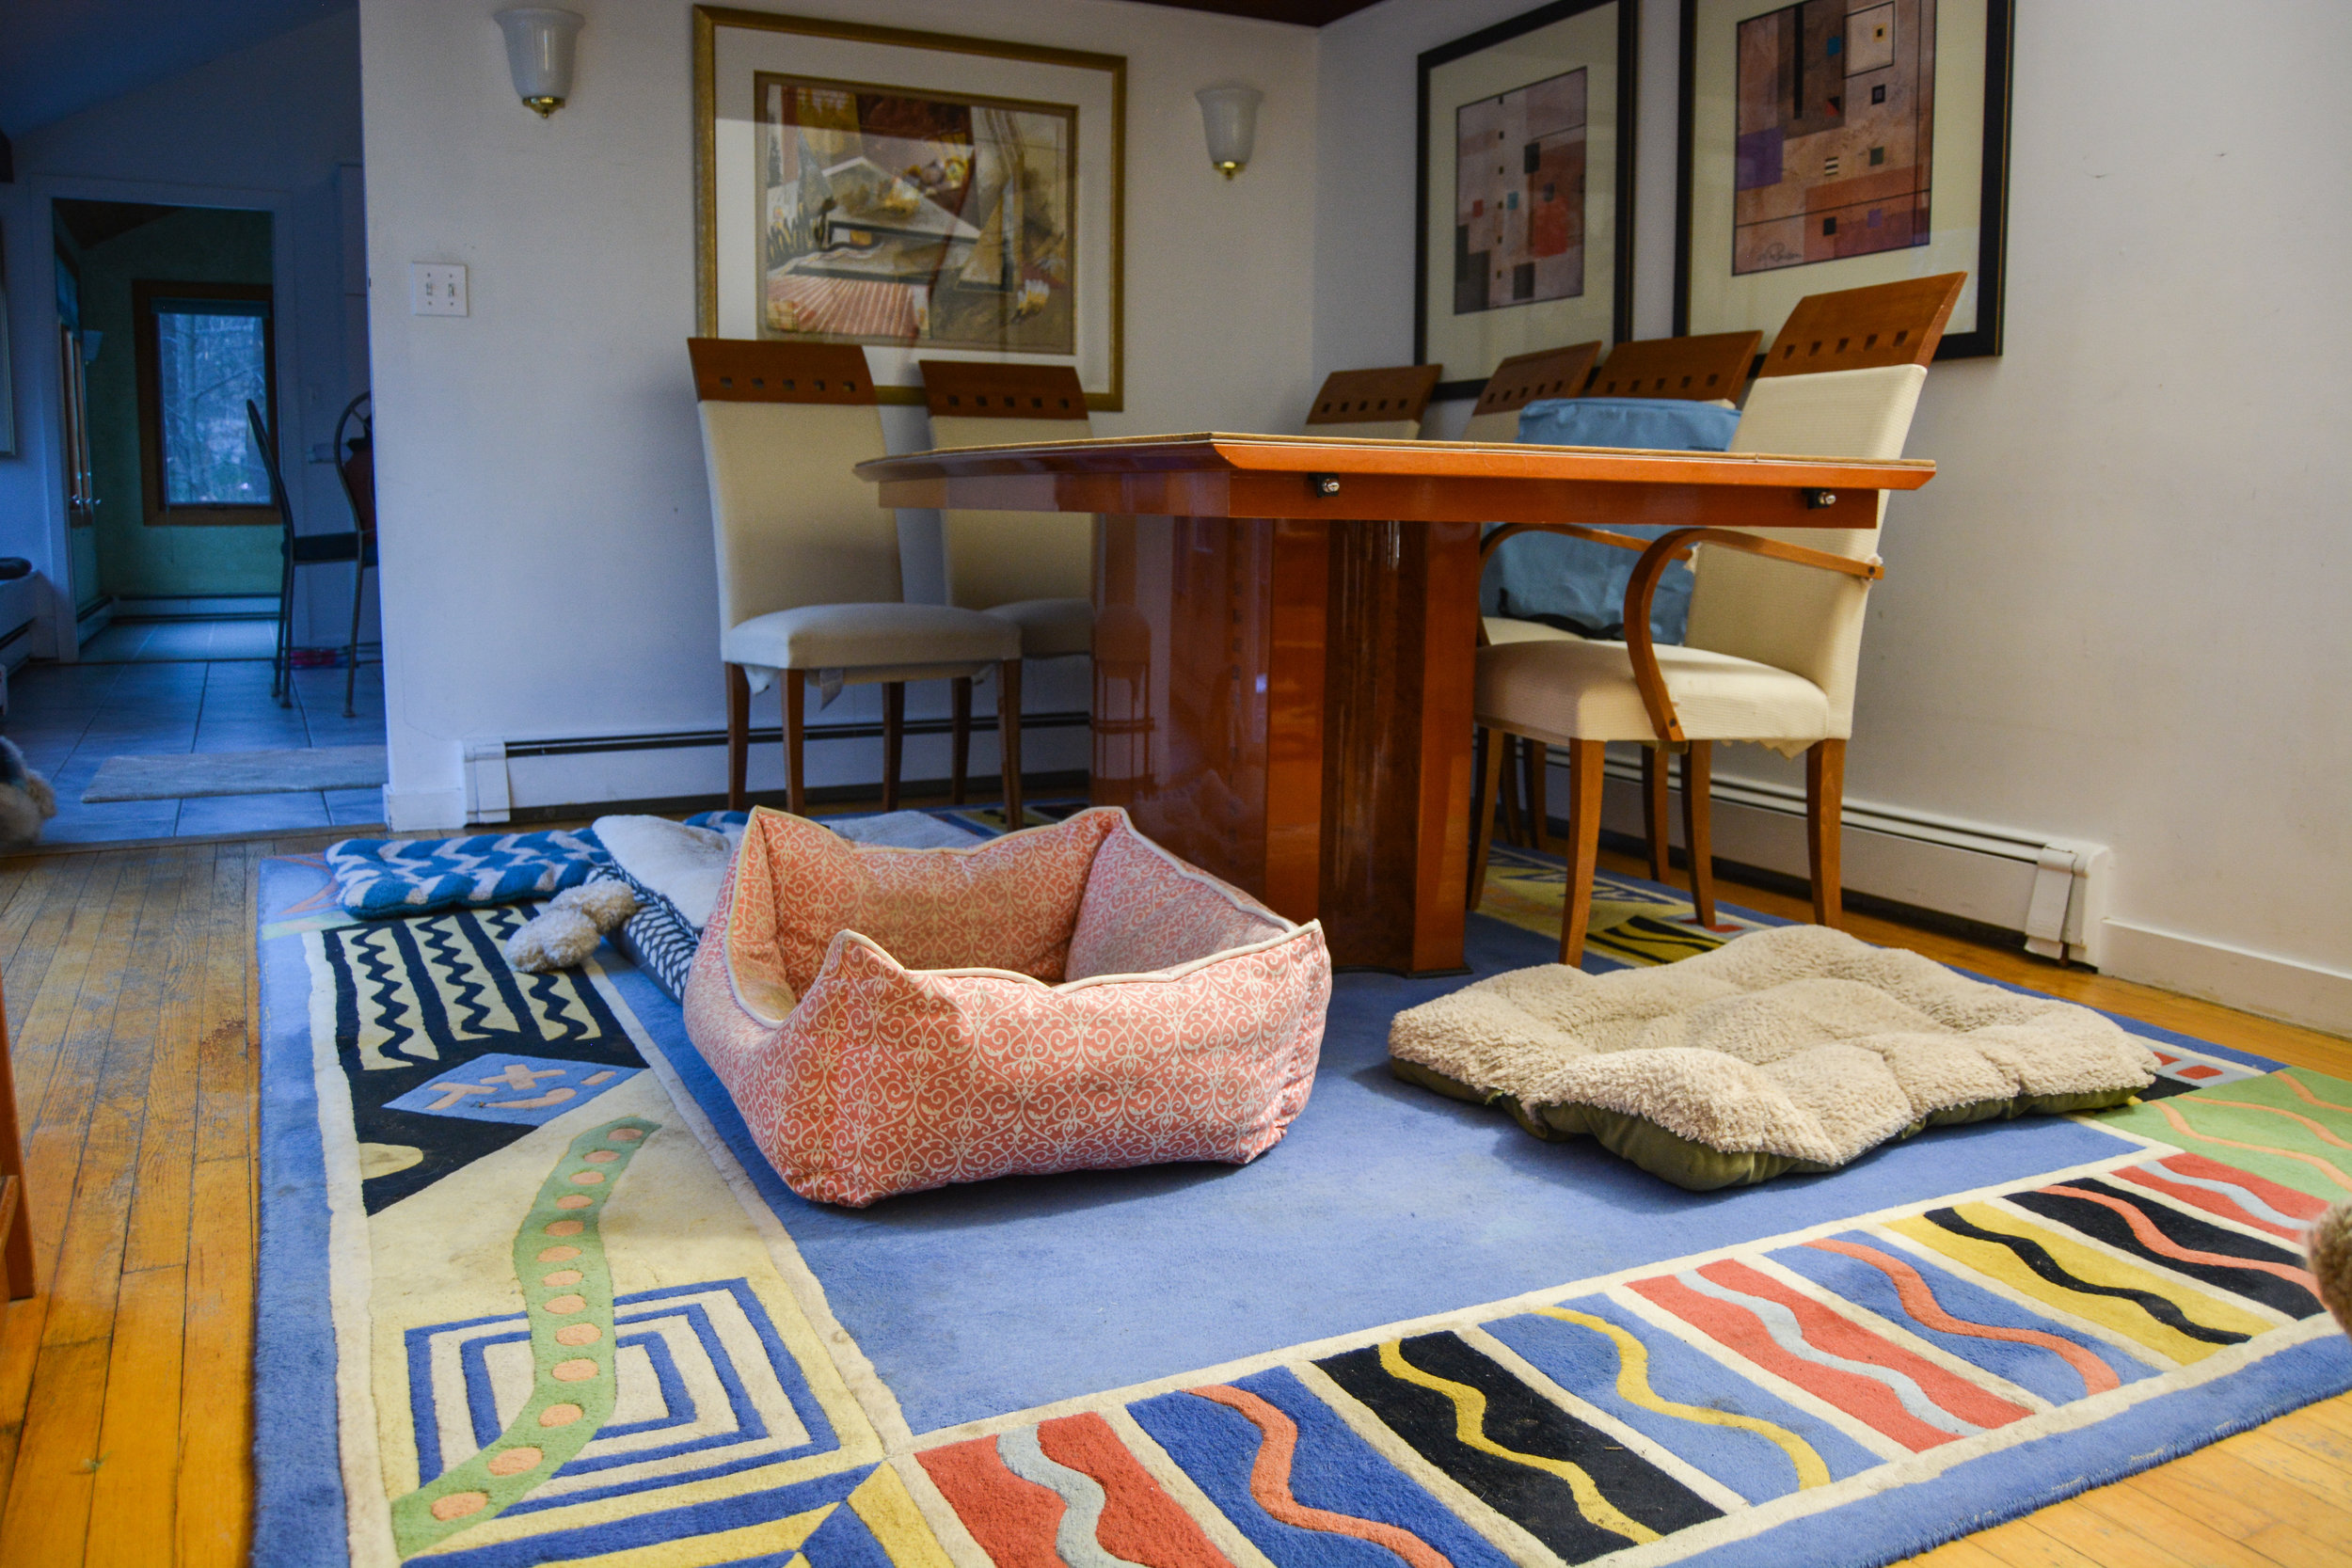 The dinning room is all about which bed your dog might find comfortable for the night.